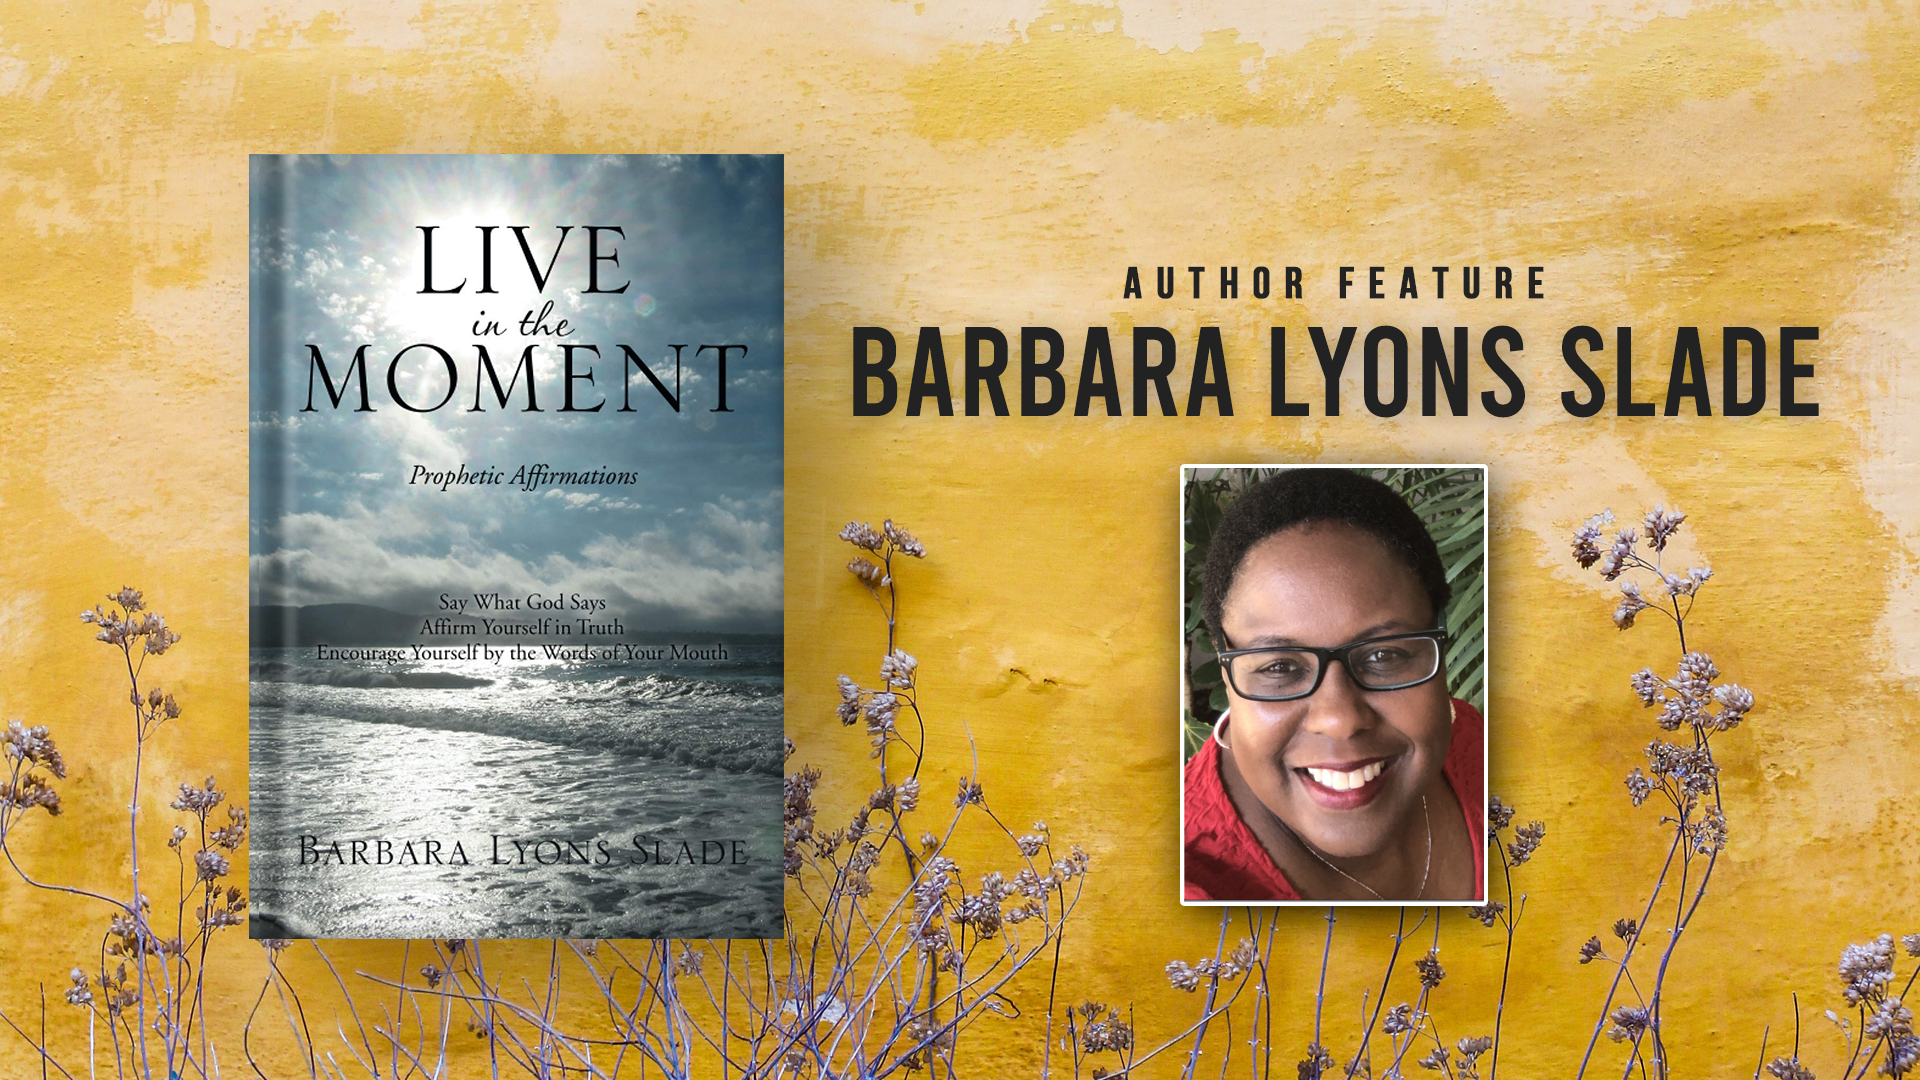 Barbara Lyons Slade author feature banner